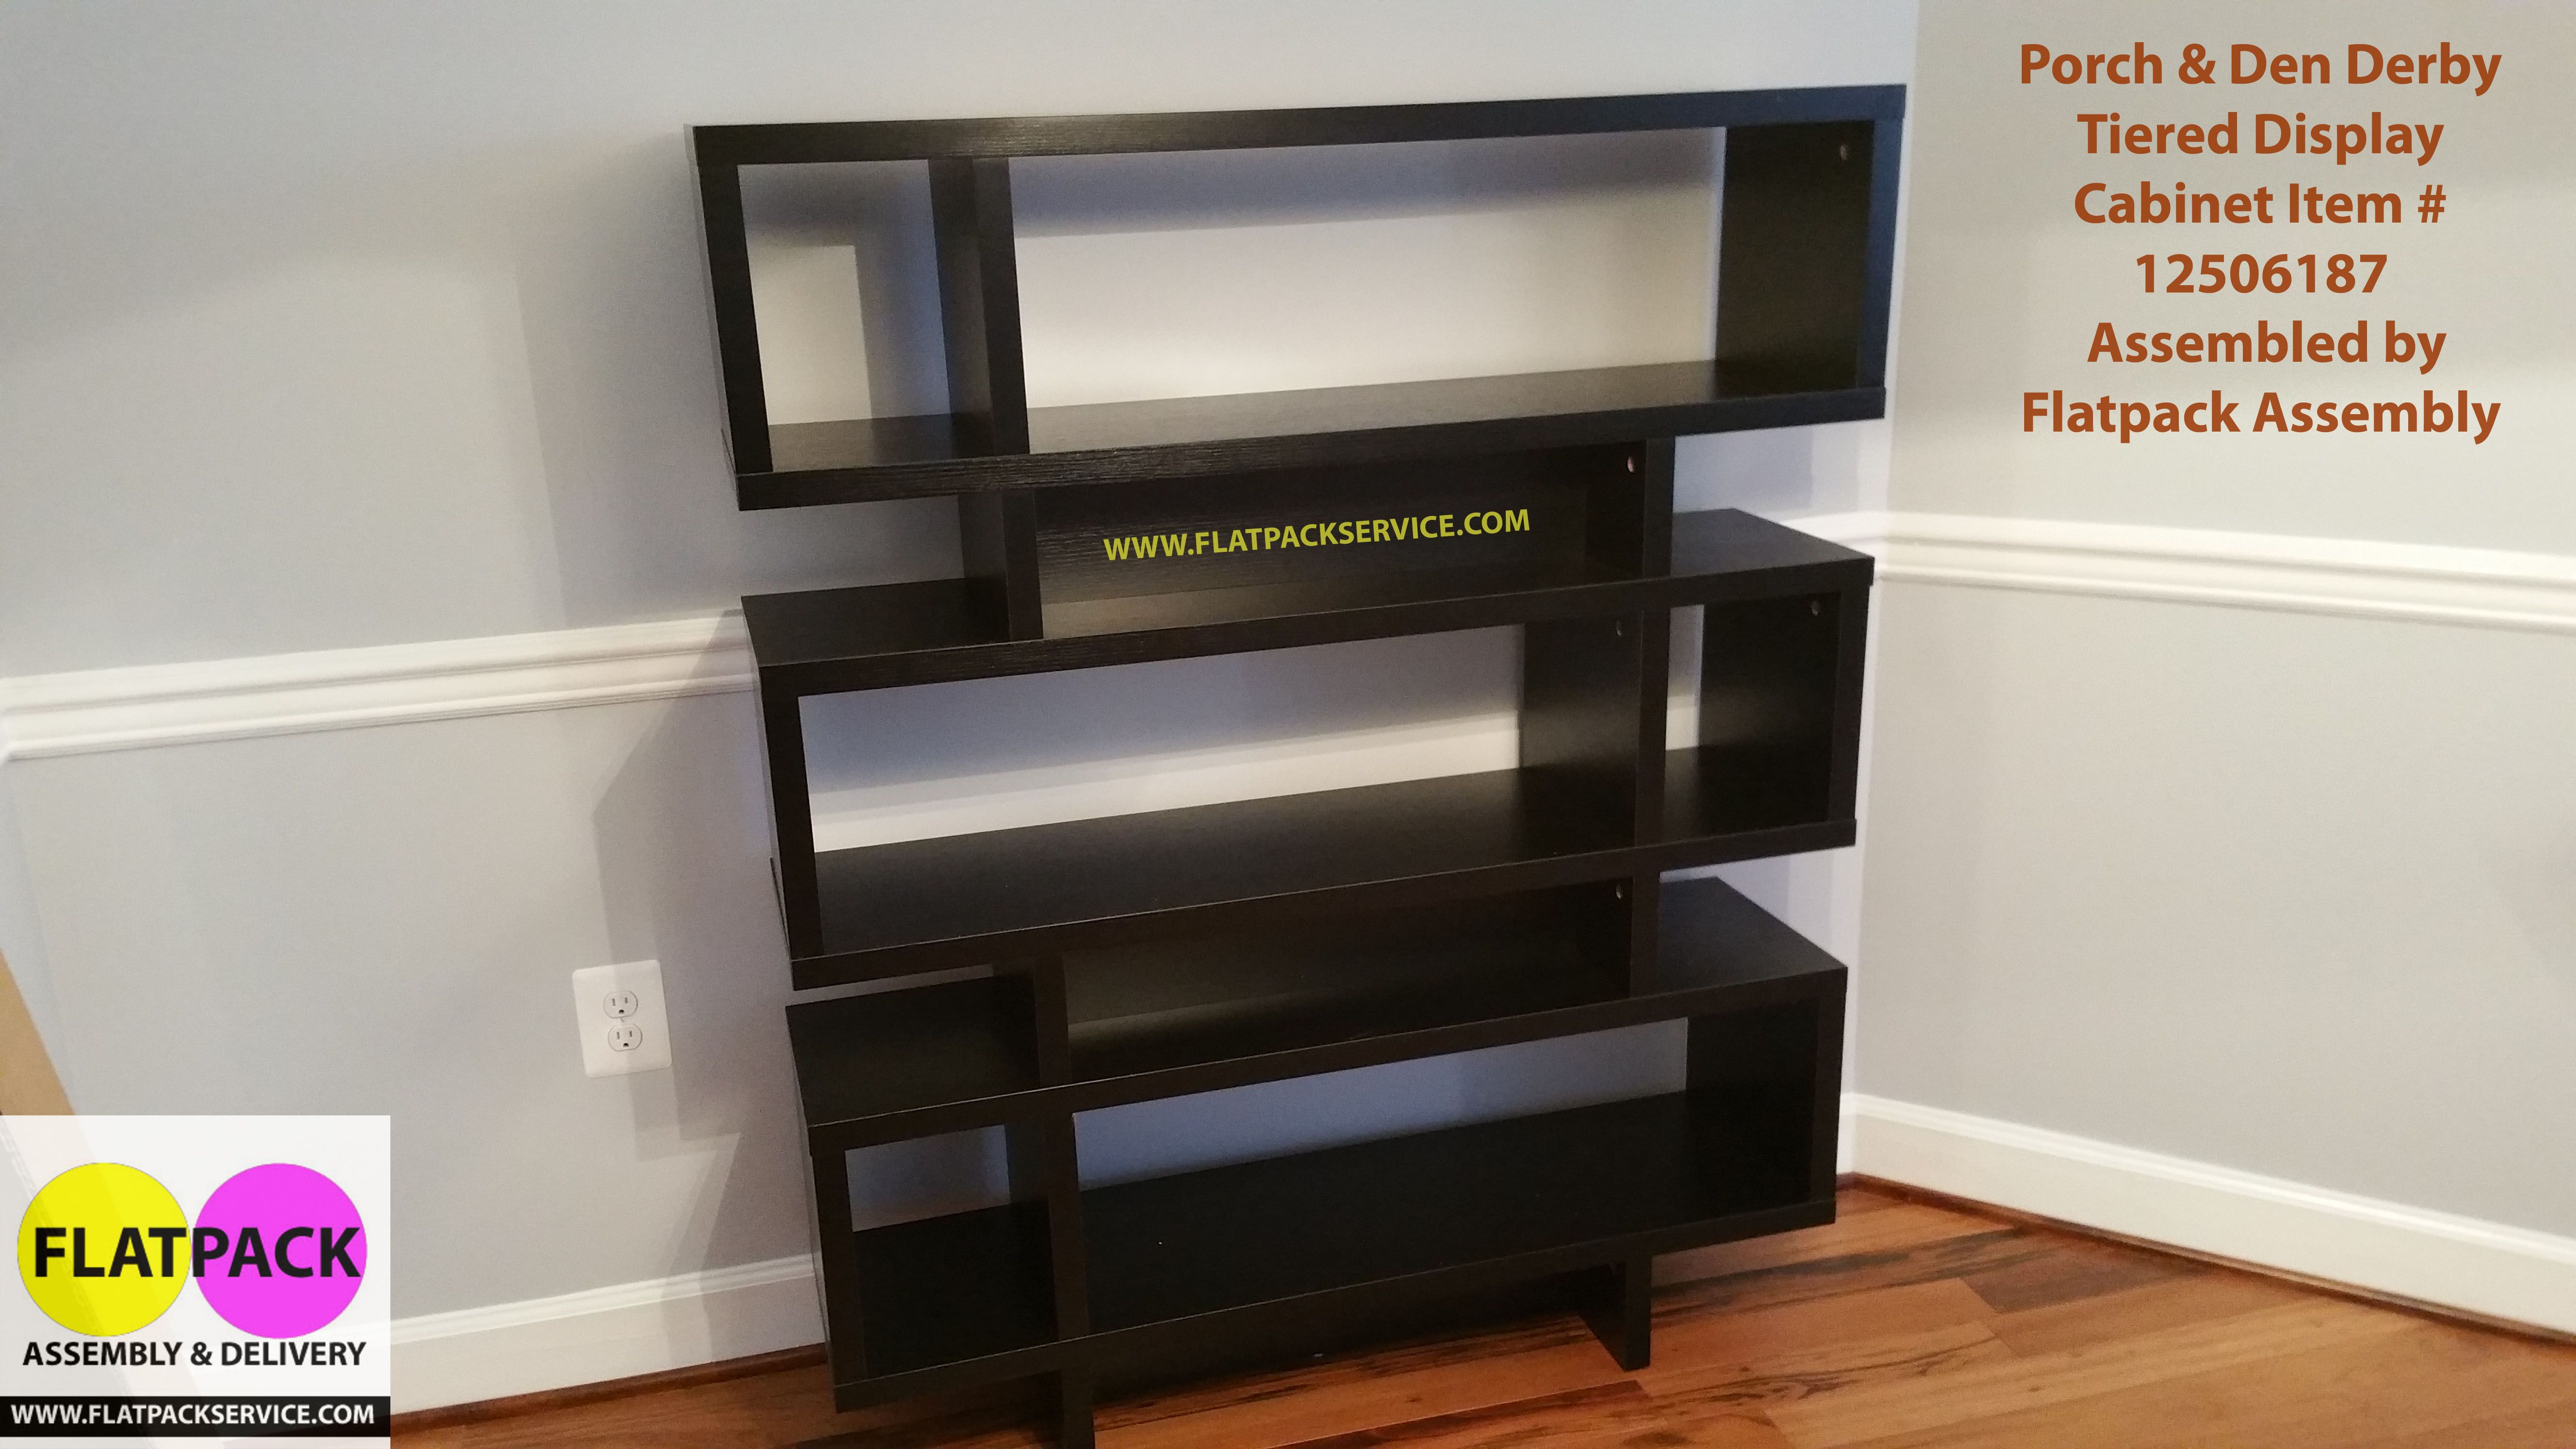 The Best 10 Furniture Assembly In Bethesda Md Last 301 971 7219